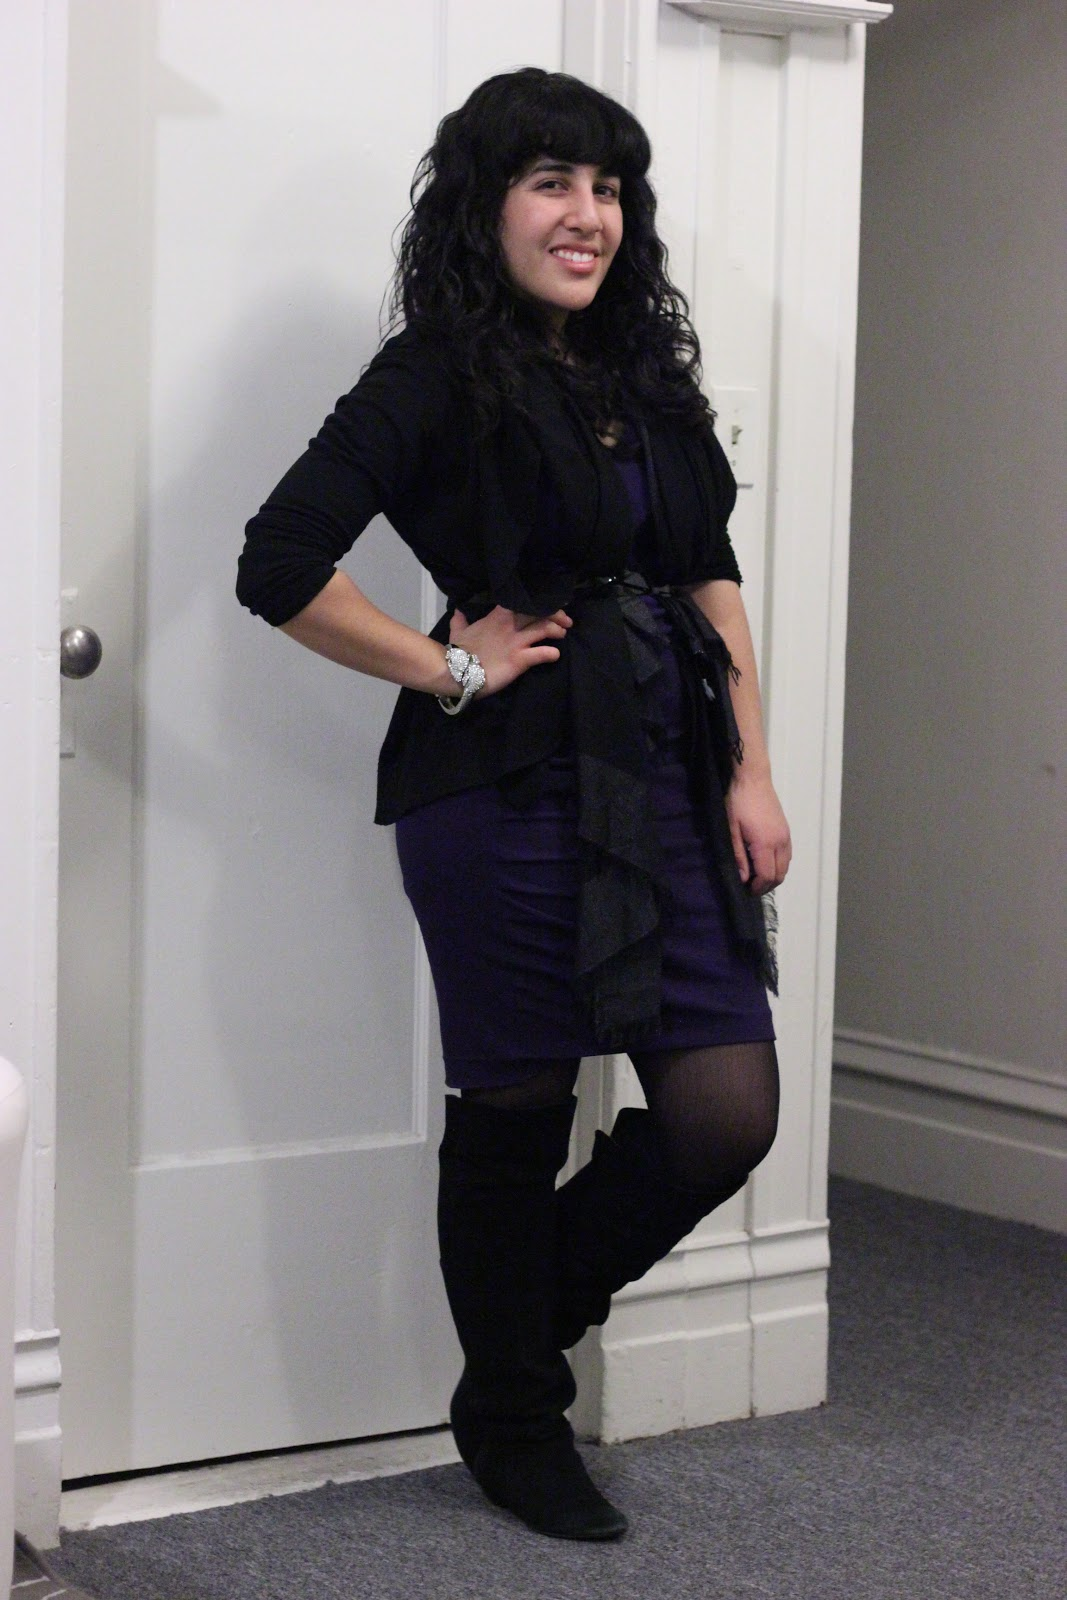 DVF Purple Dress and F21 Cardigan Winter Outfit